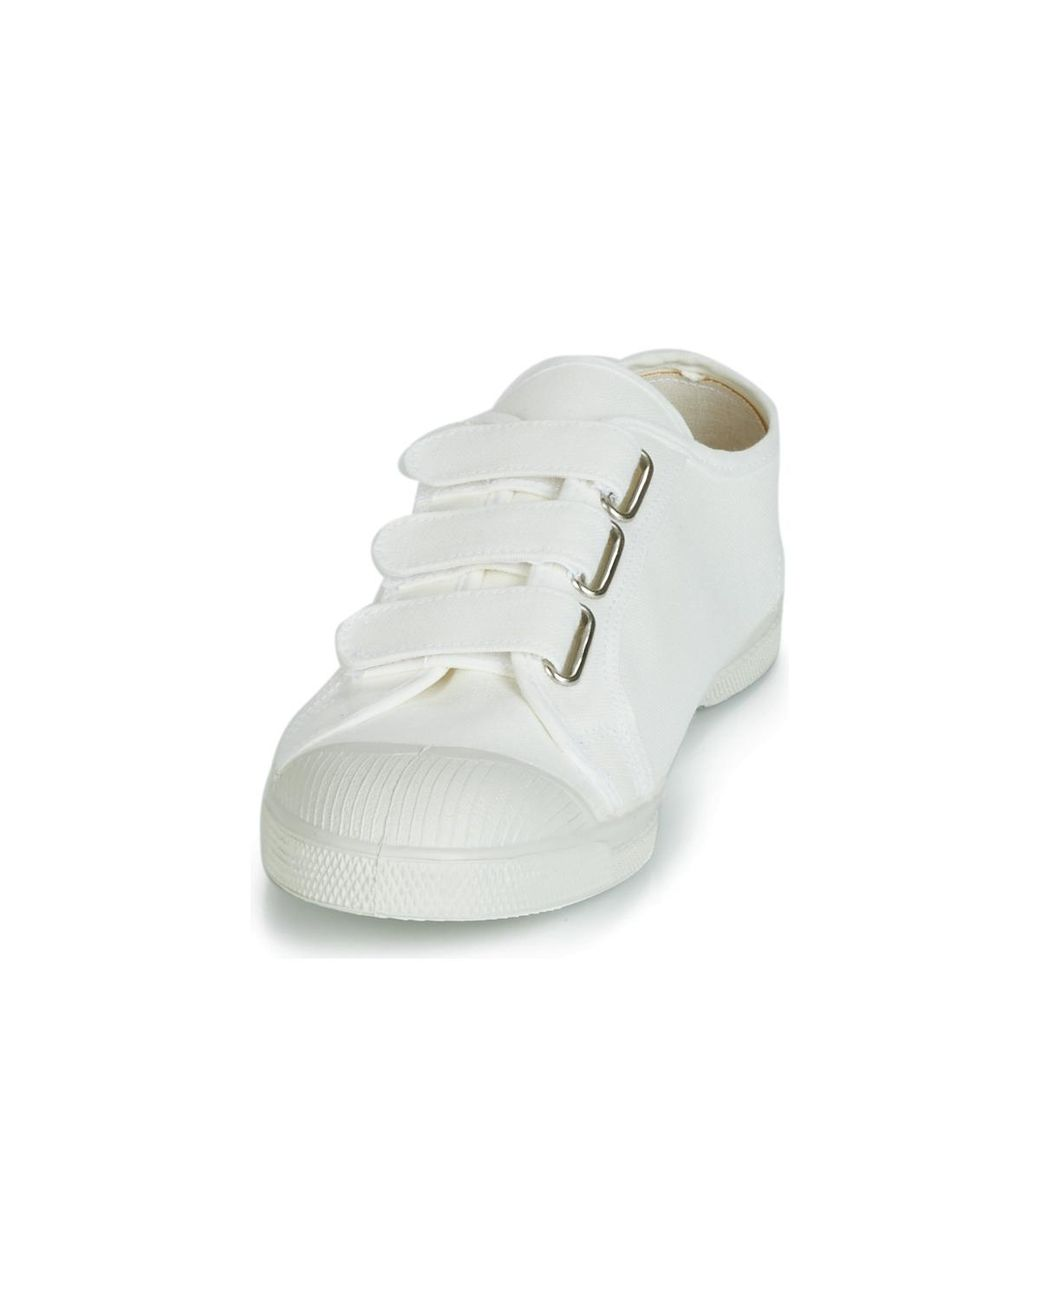 Scratch Shoestrainers White Tennis Tennis White Women's Women's Shoestrainers Scratch yY7f6bgv